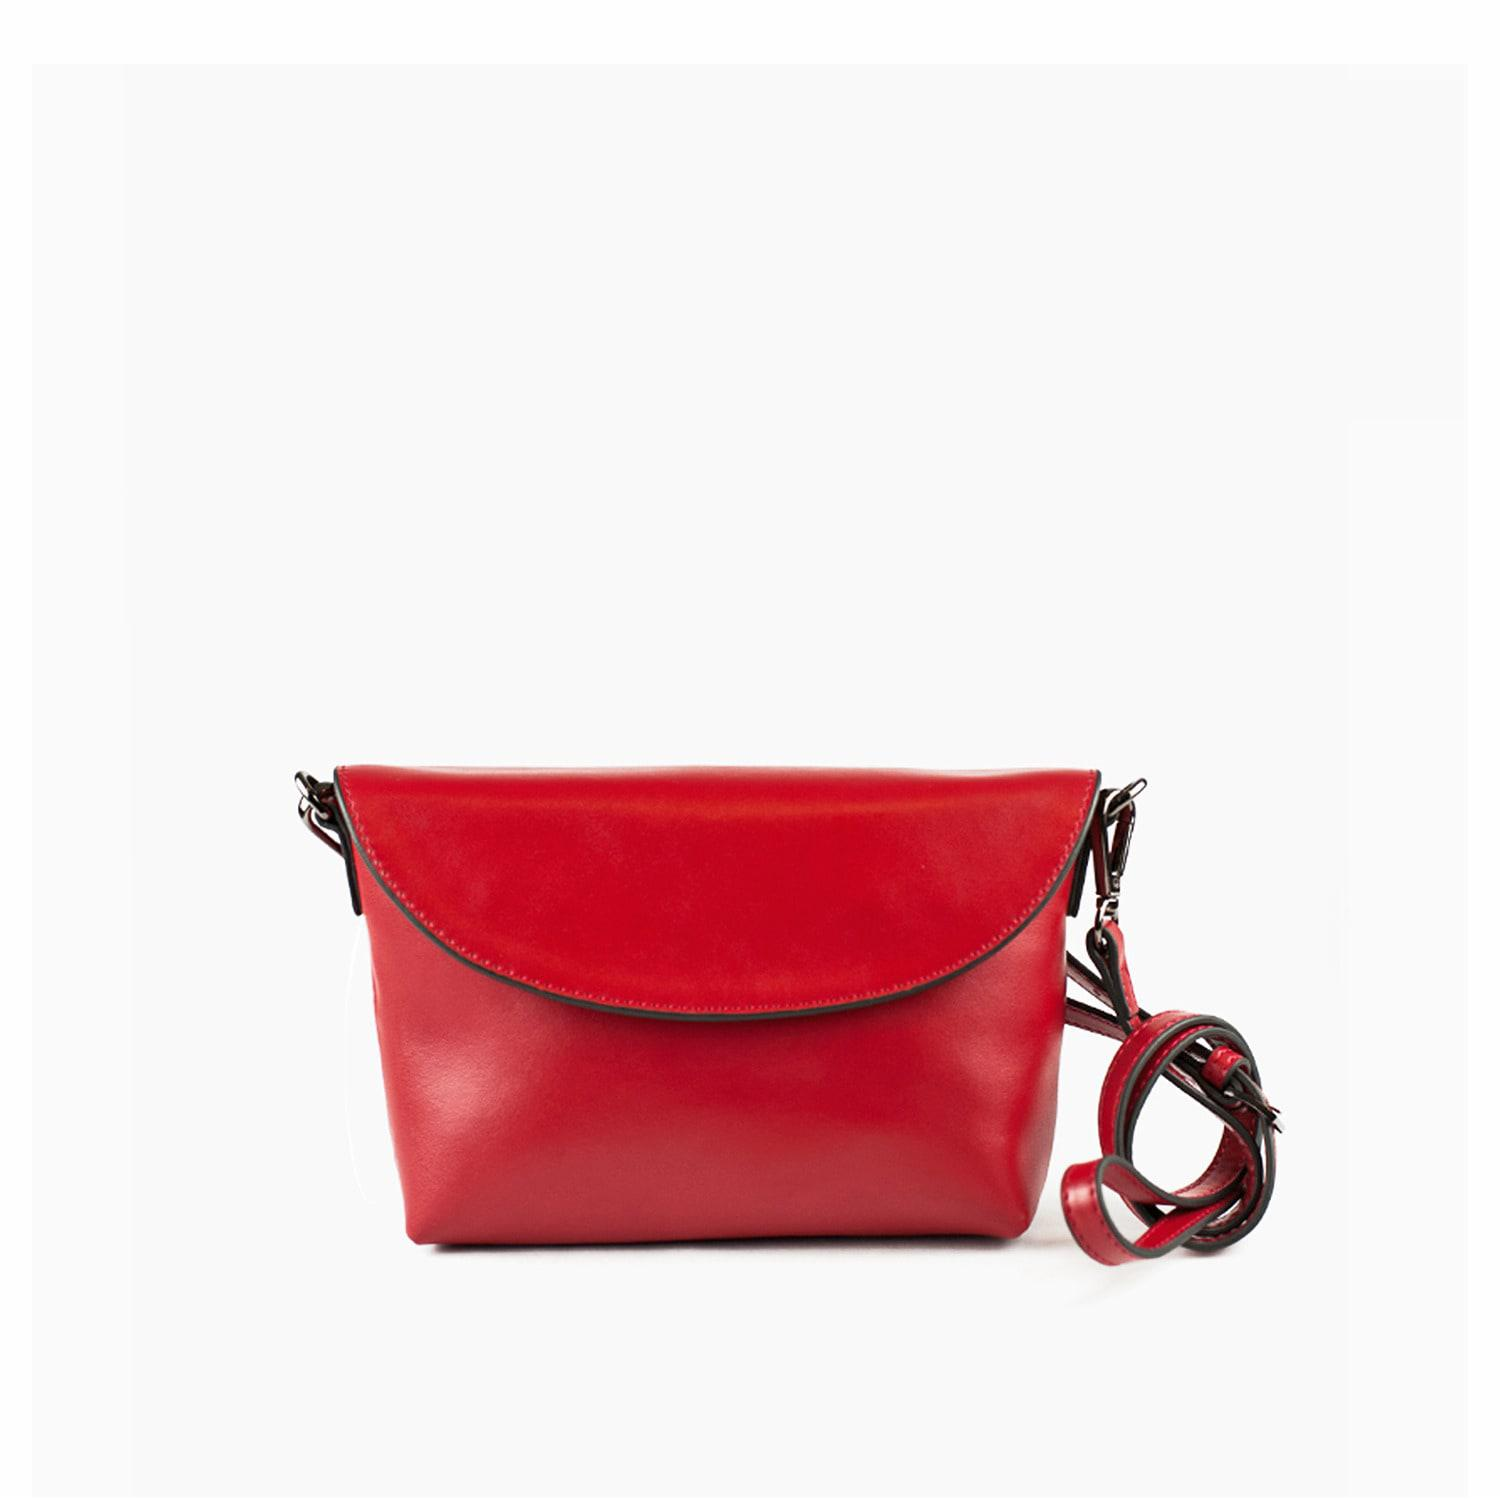 Lyst - Charlie Baker London Tokyo Red Crossbody   Clutch Bag in Red 0682b67be29e8